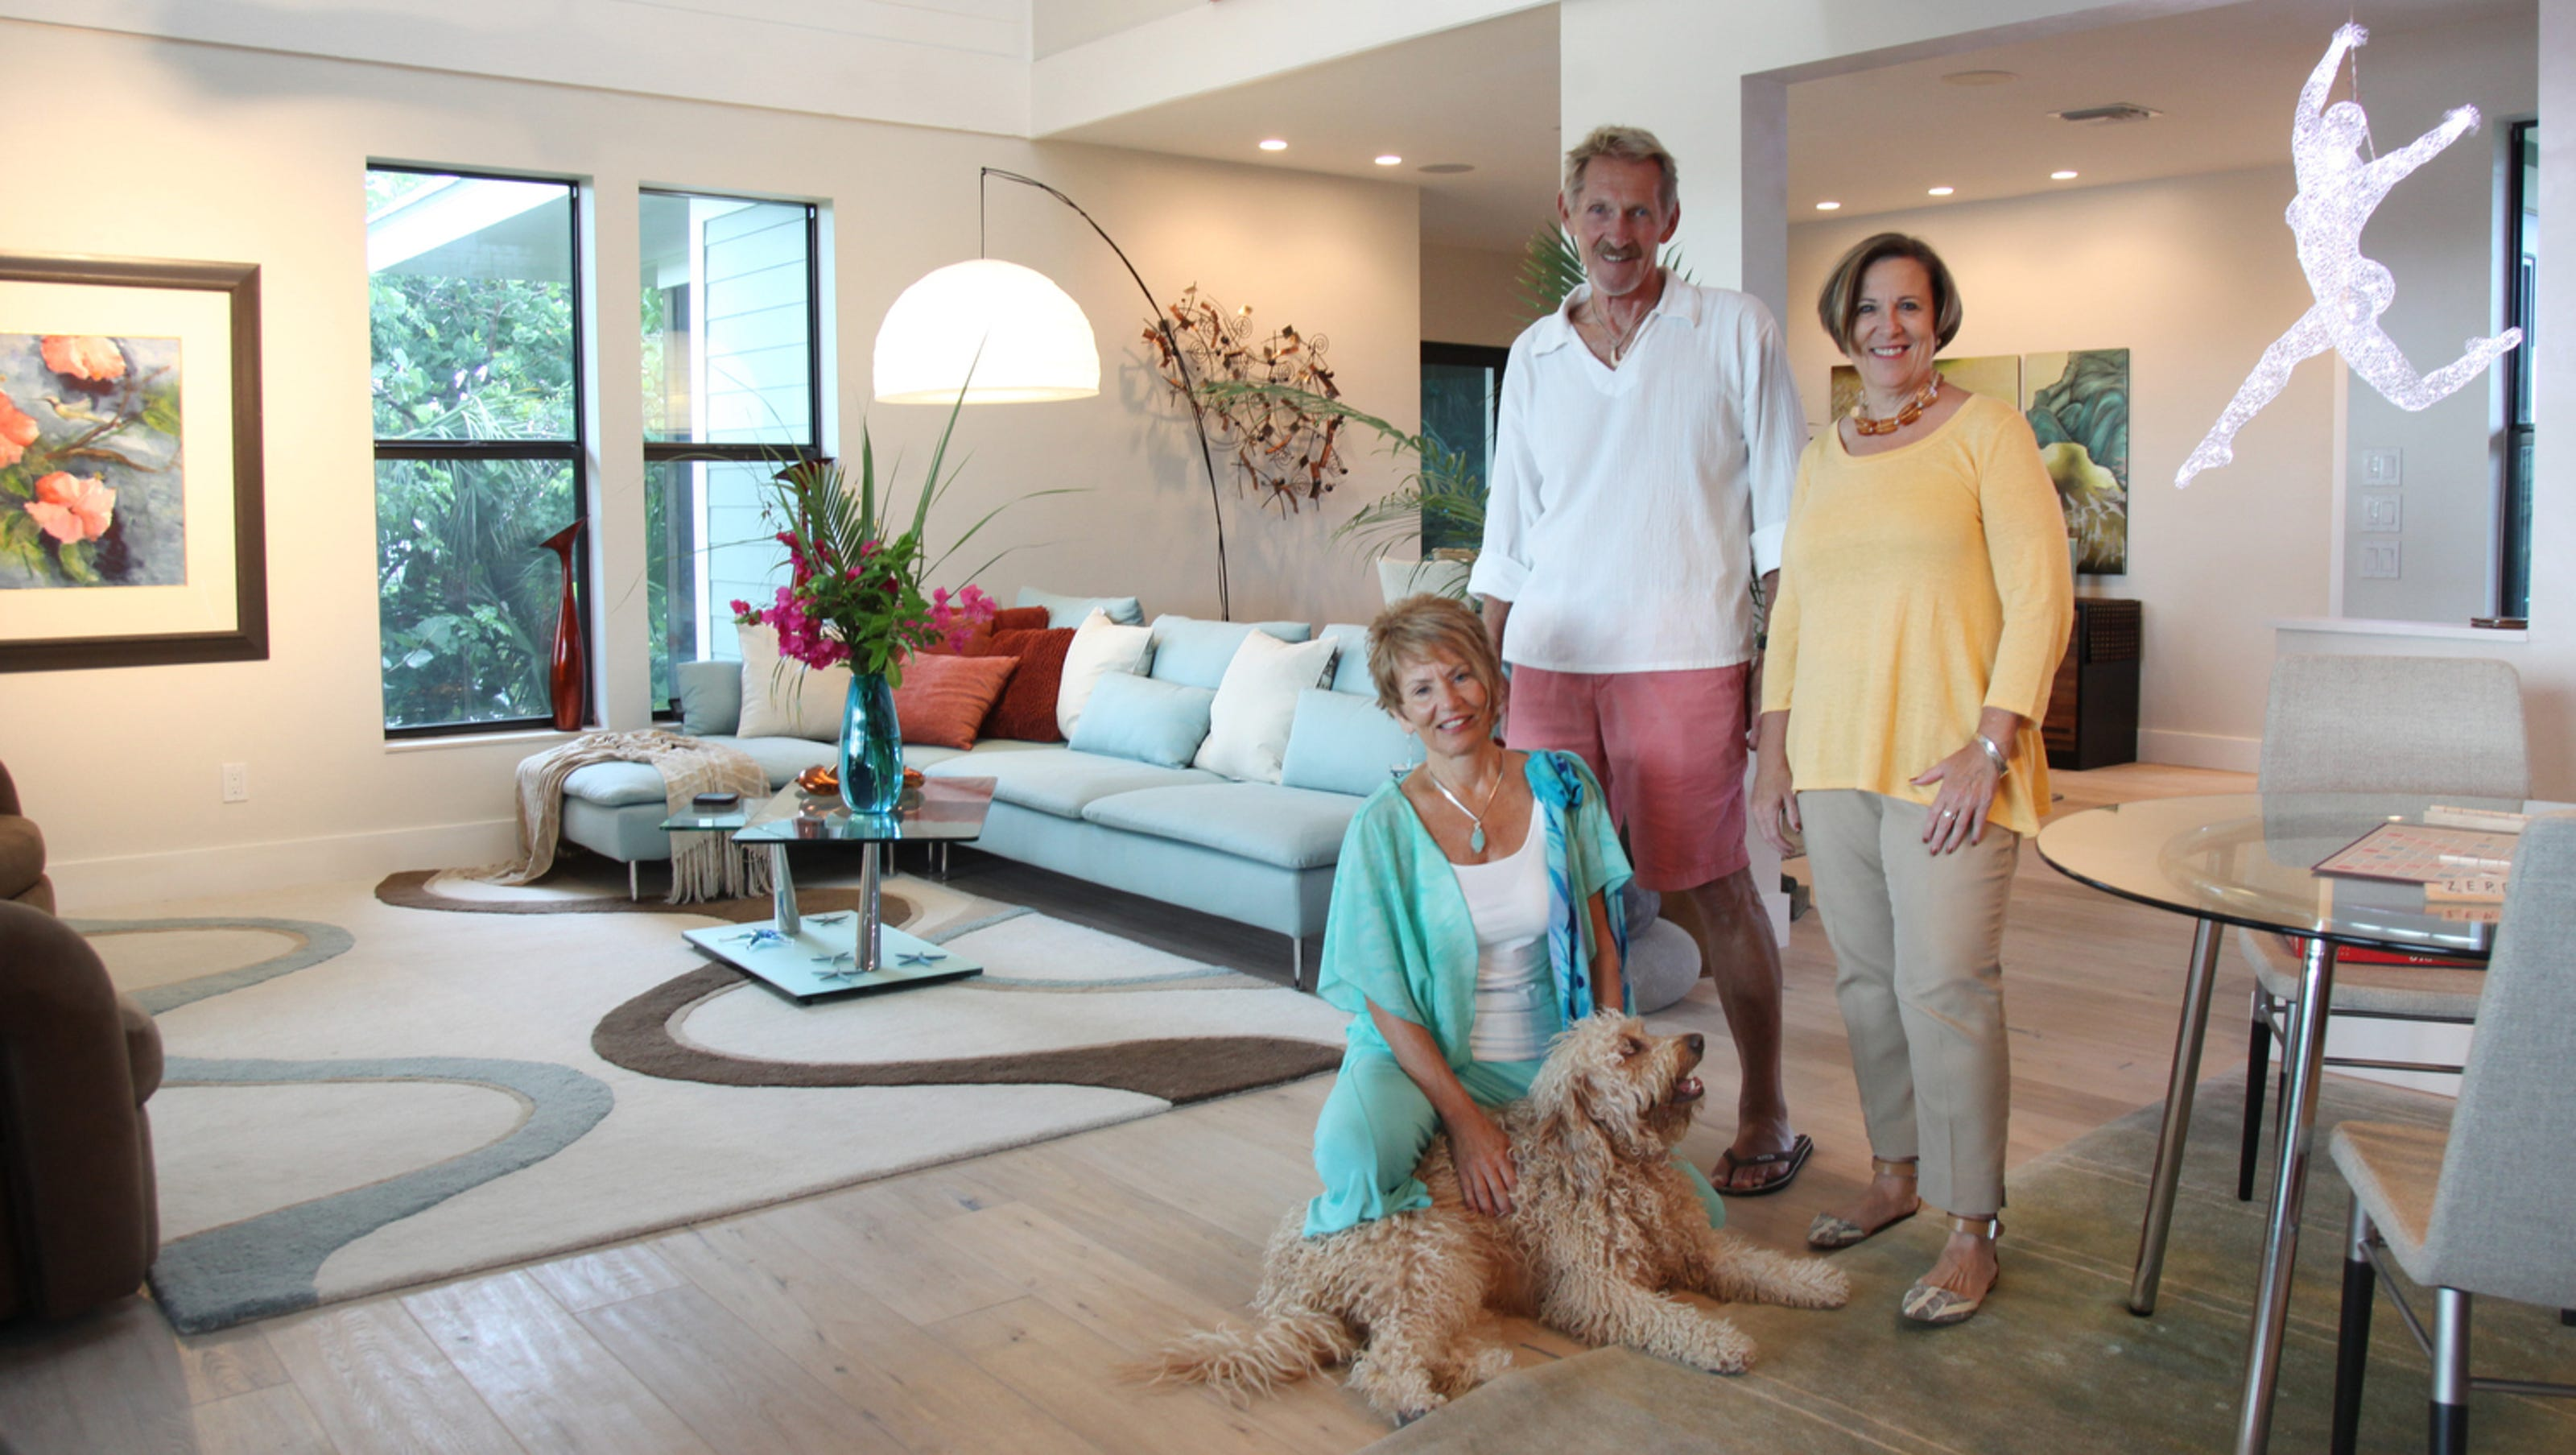 Renovations bring beach house to life